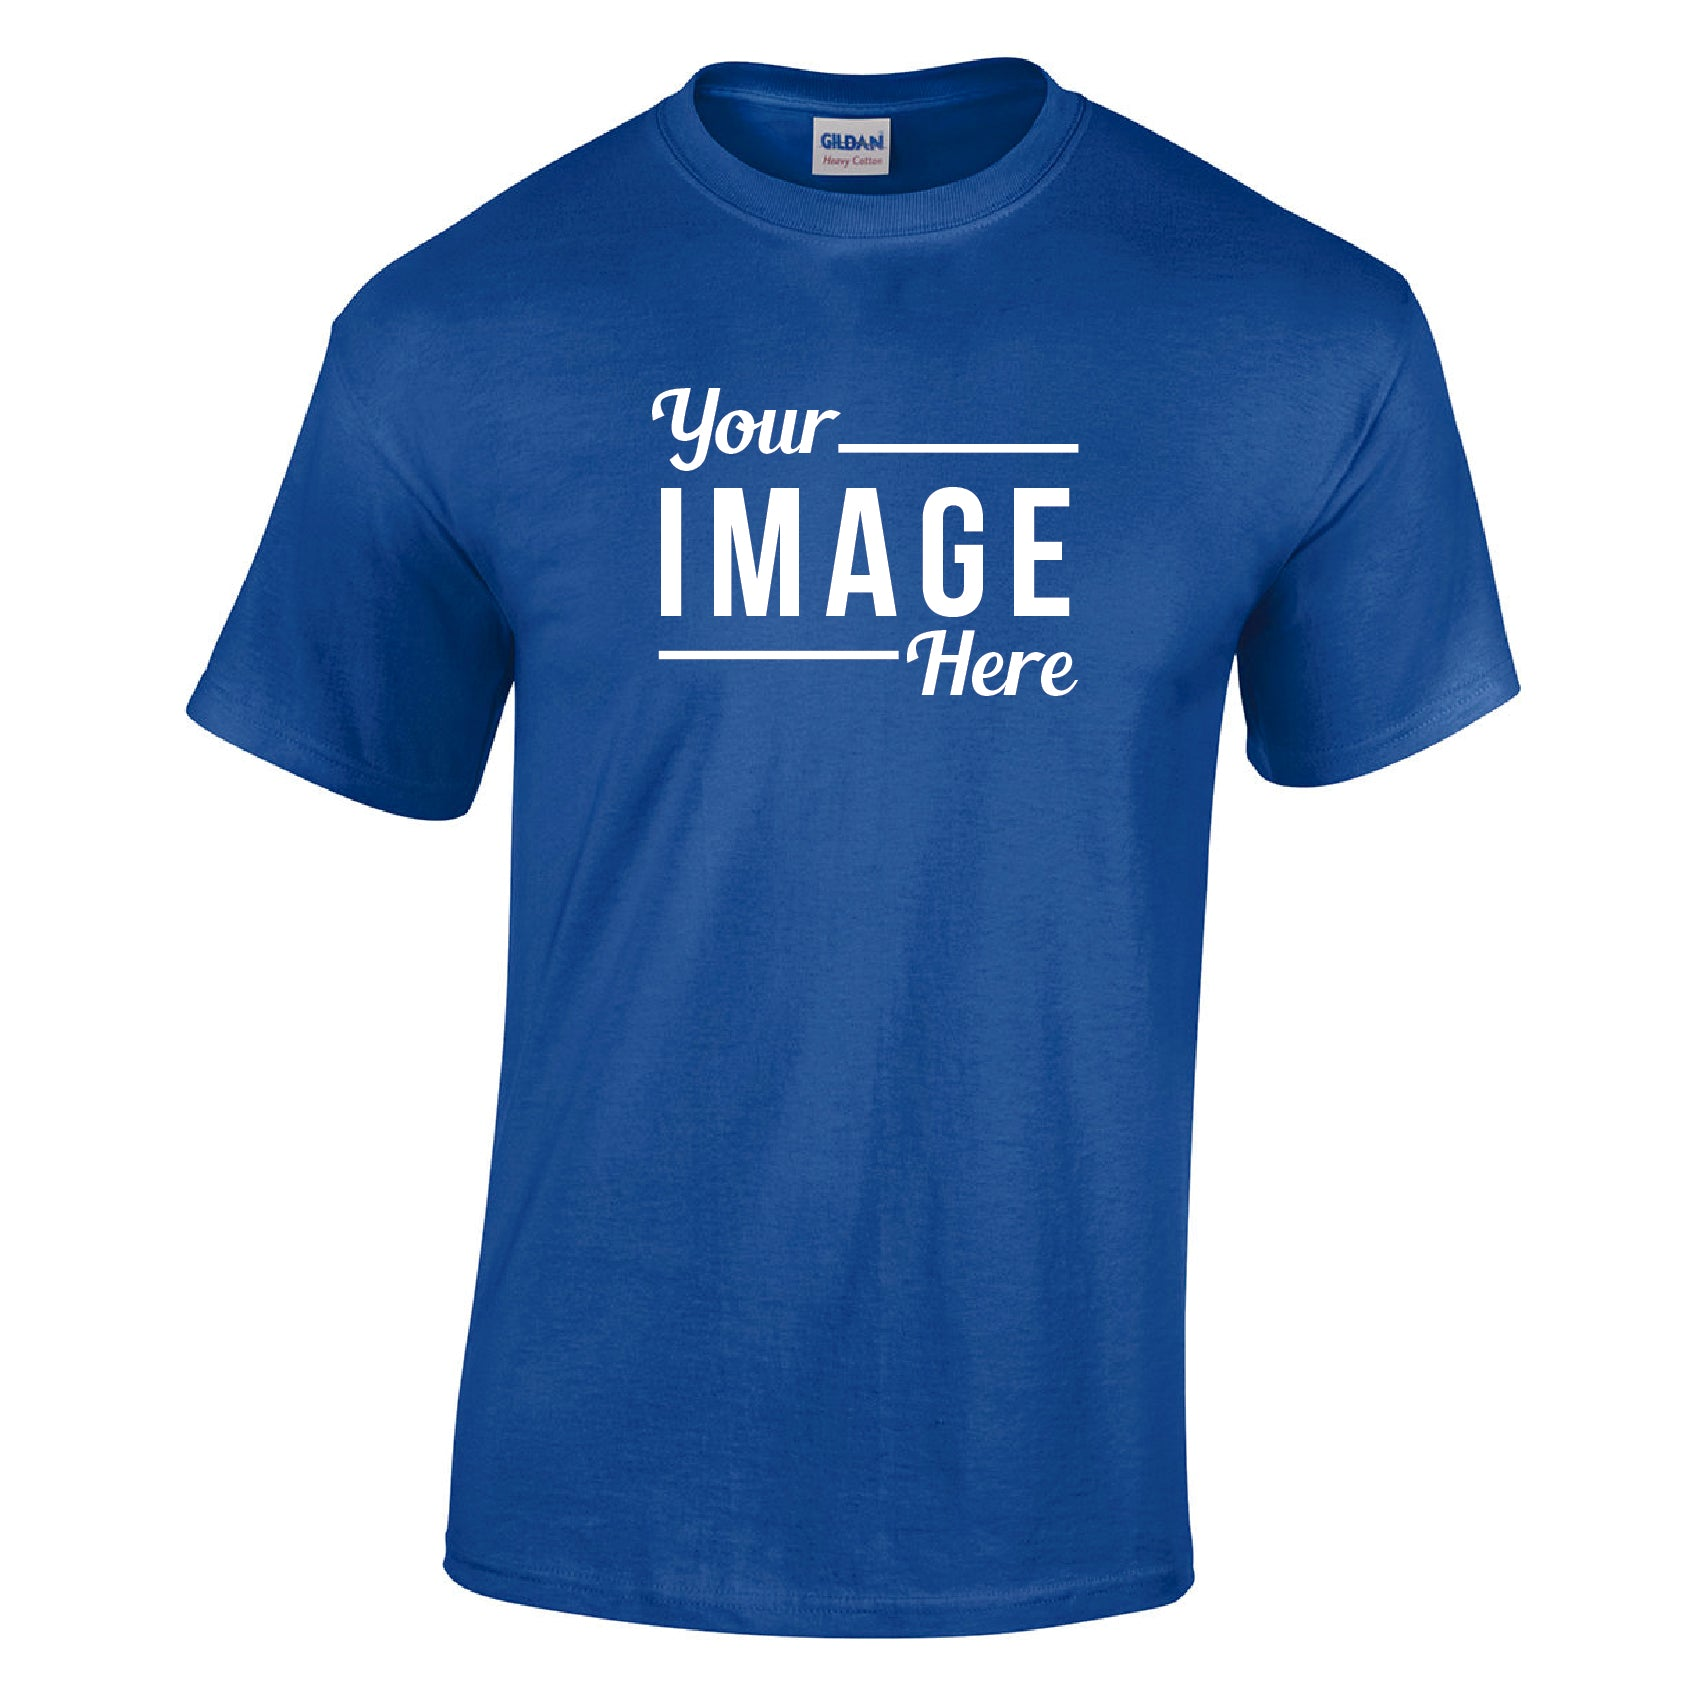 12 Custom Printed T-Shirts with One Color Imprint